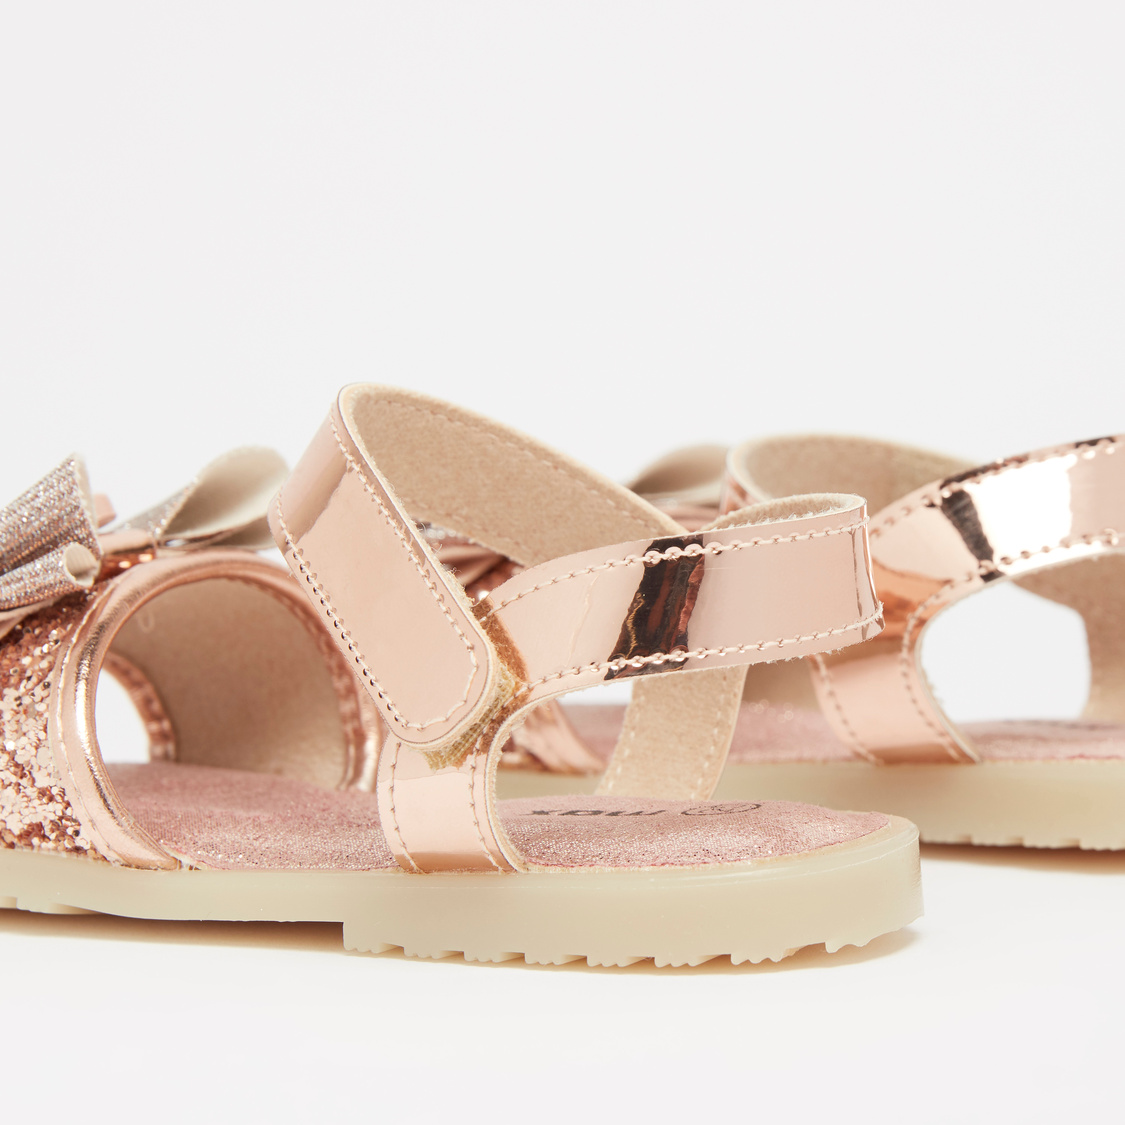 Embellished Sandals with Bow Applique